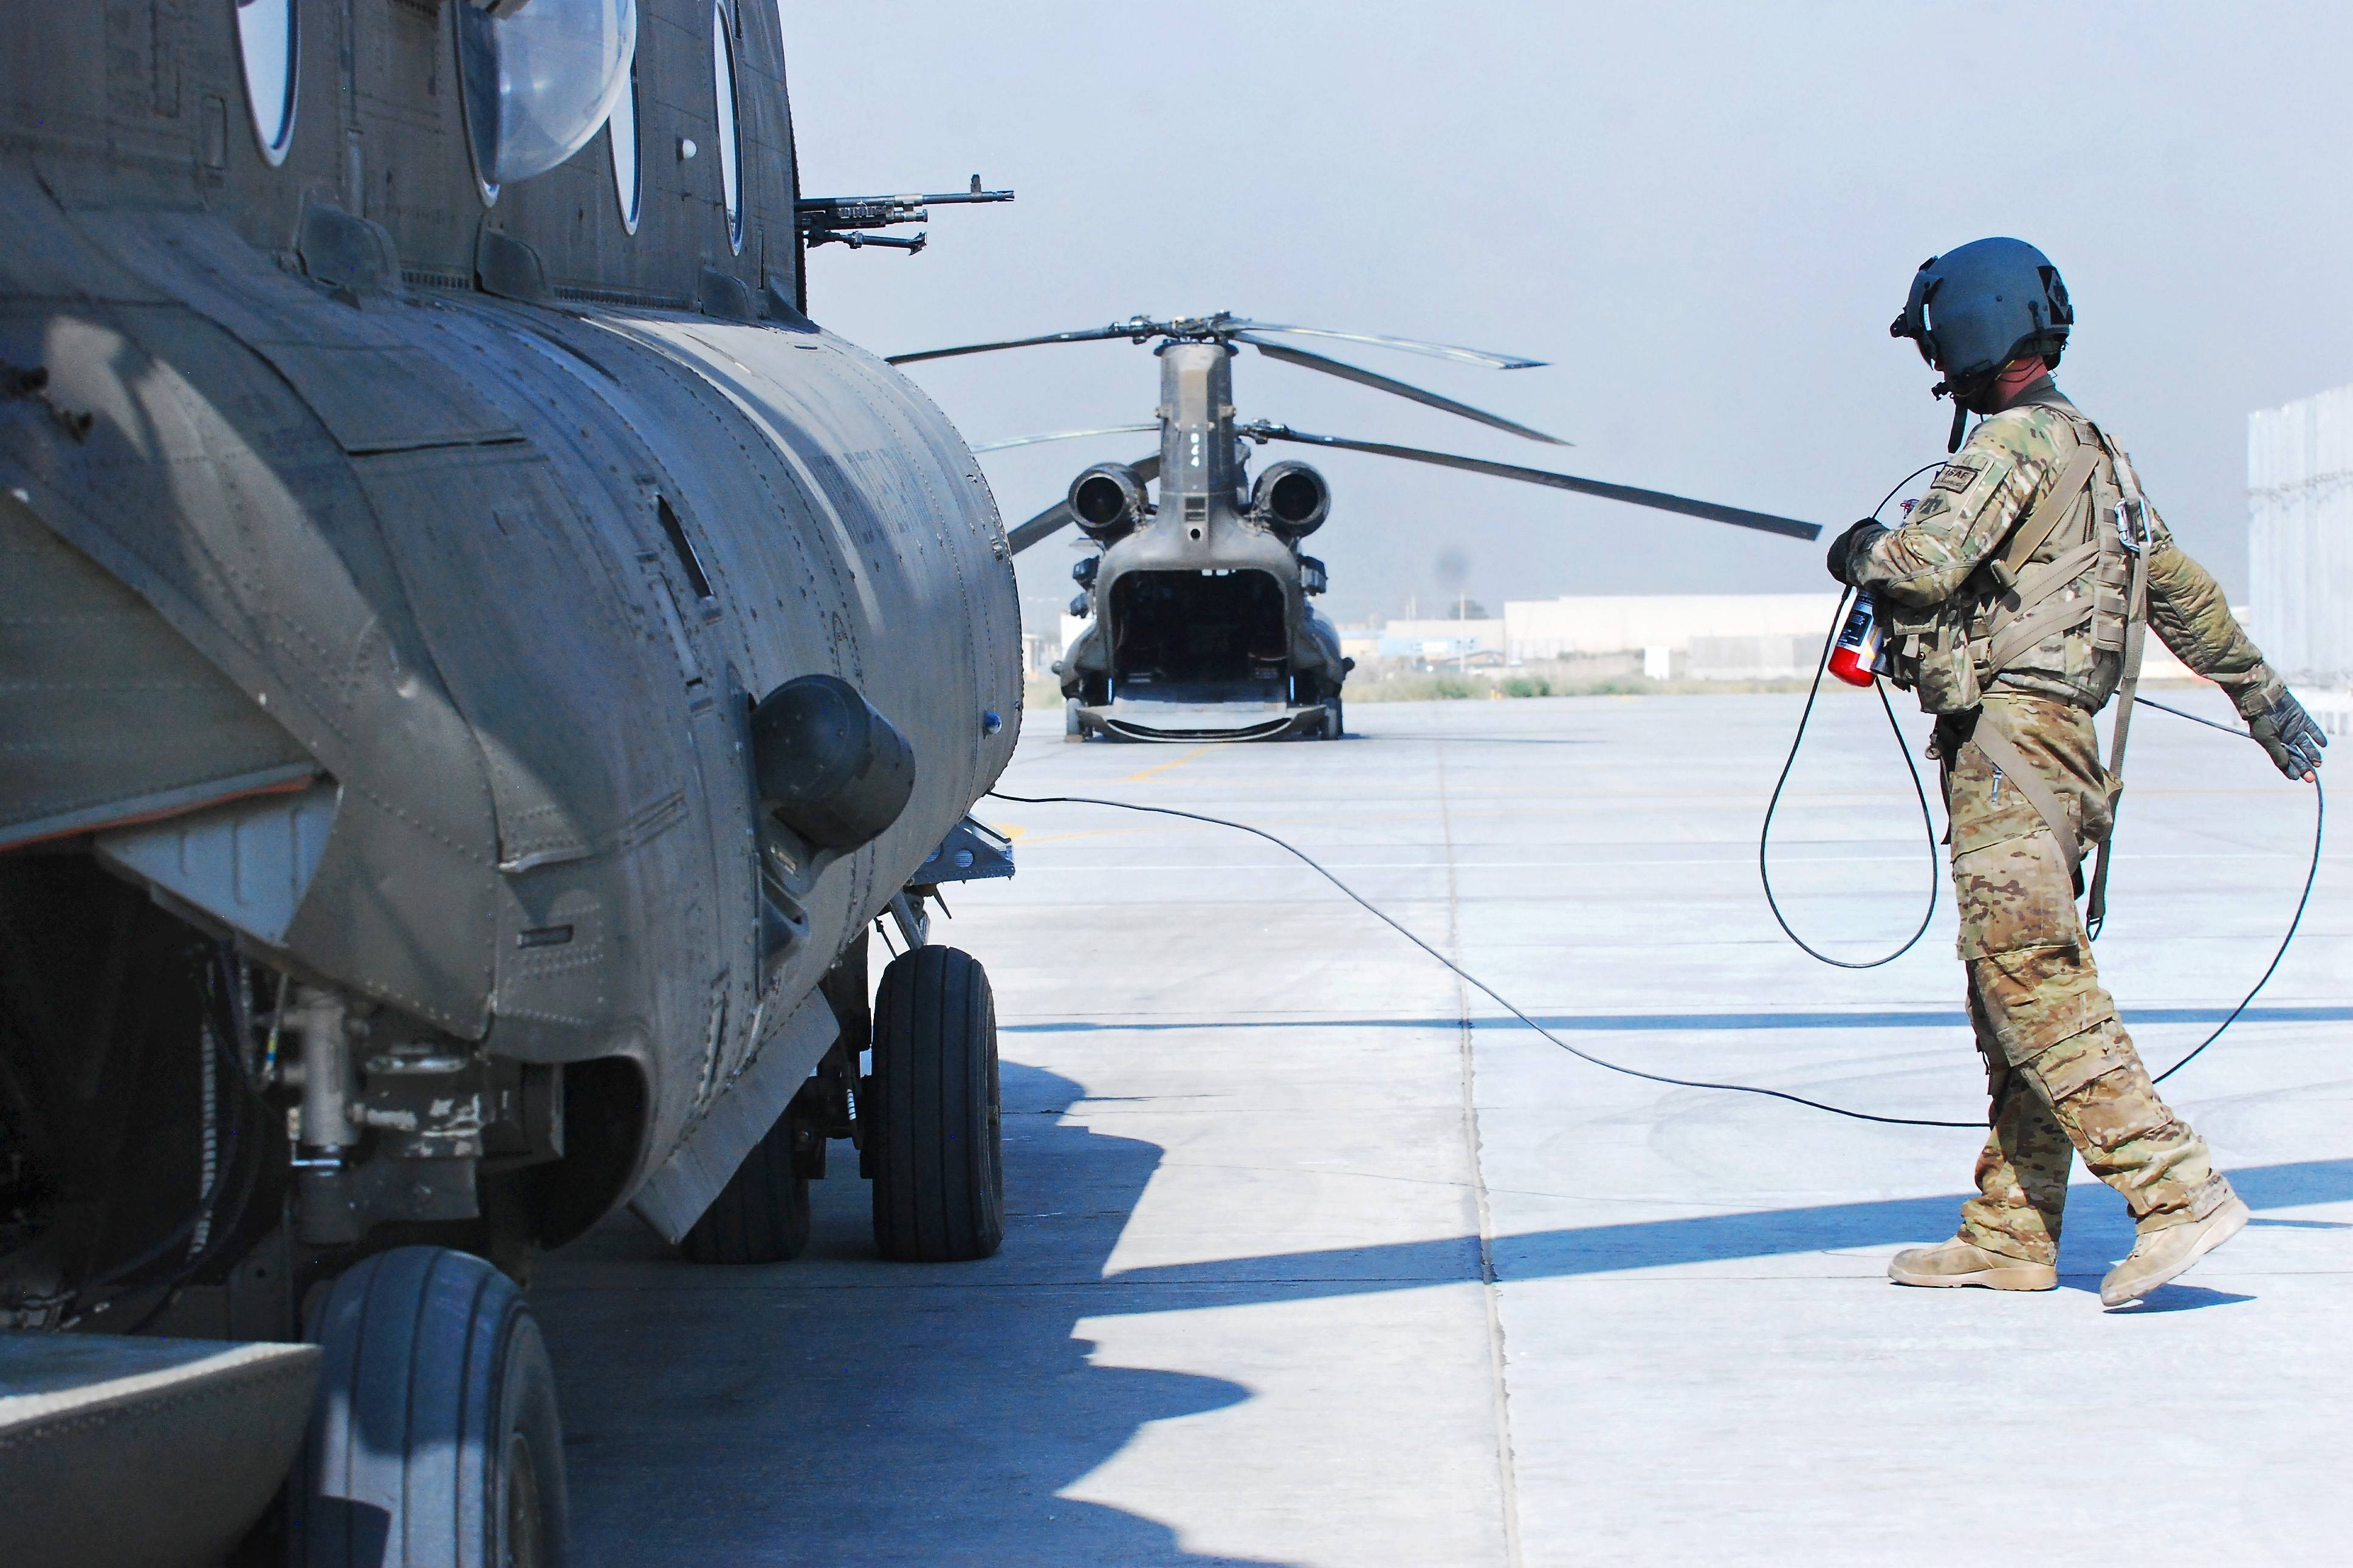 Pfc. Zach Fike, a CH-47 Chinook helicopter crew readies an aircraft at Bagram Air Field, Afghanistan.